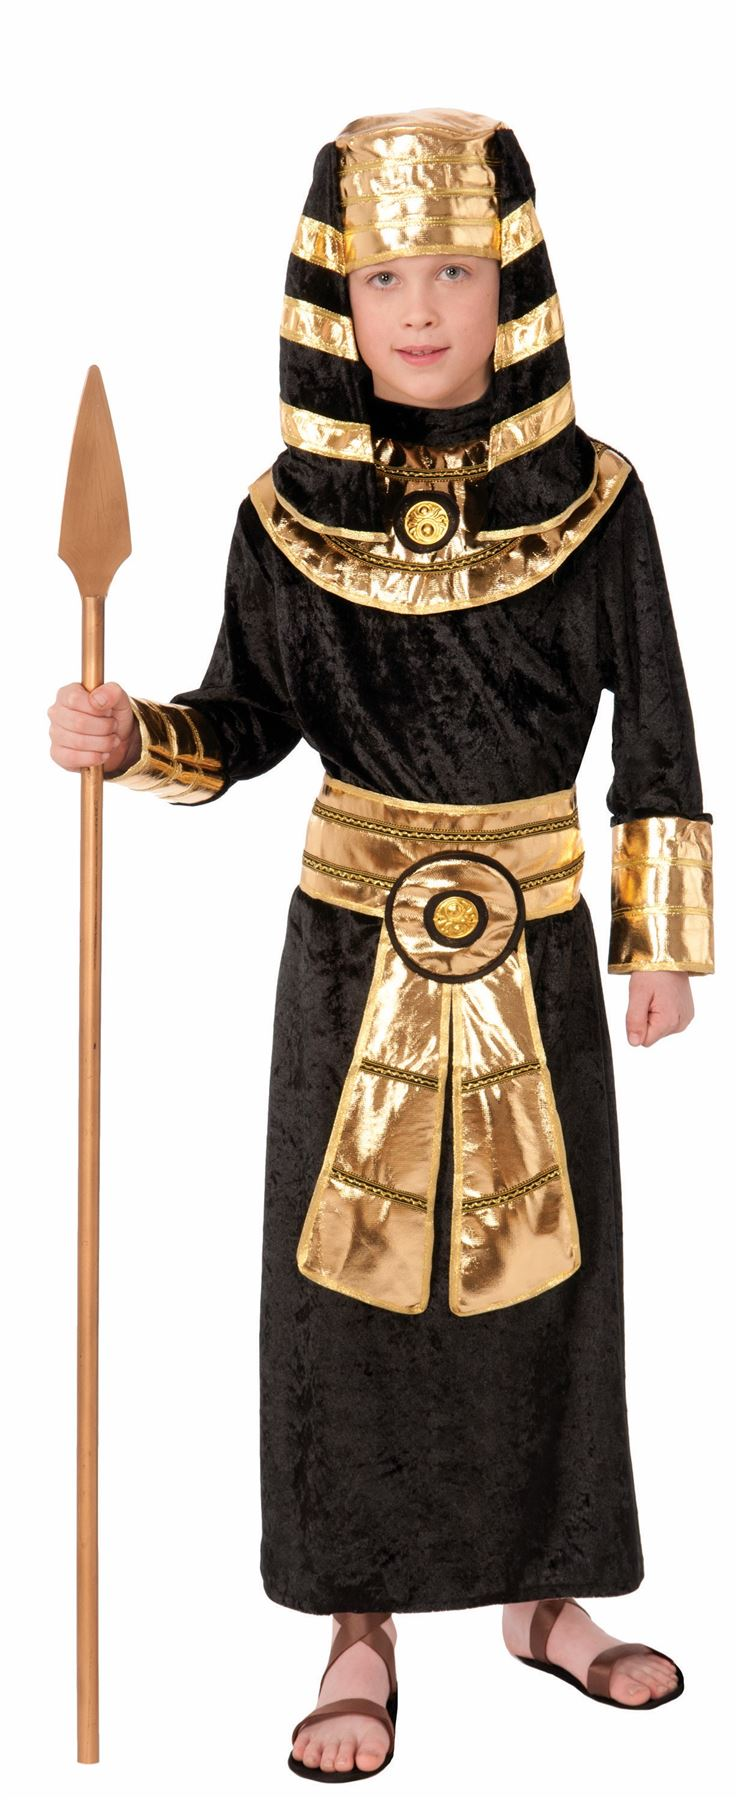 Pharoah Egyptian Costume Boys M  sc 1 st  Walmart & Pharoah Egyptian Costume Boys M - Walmart.com